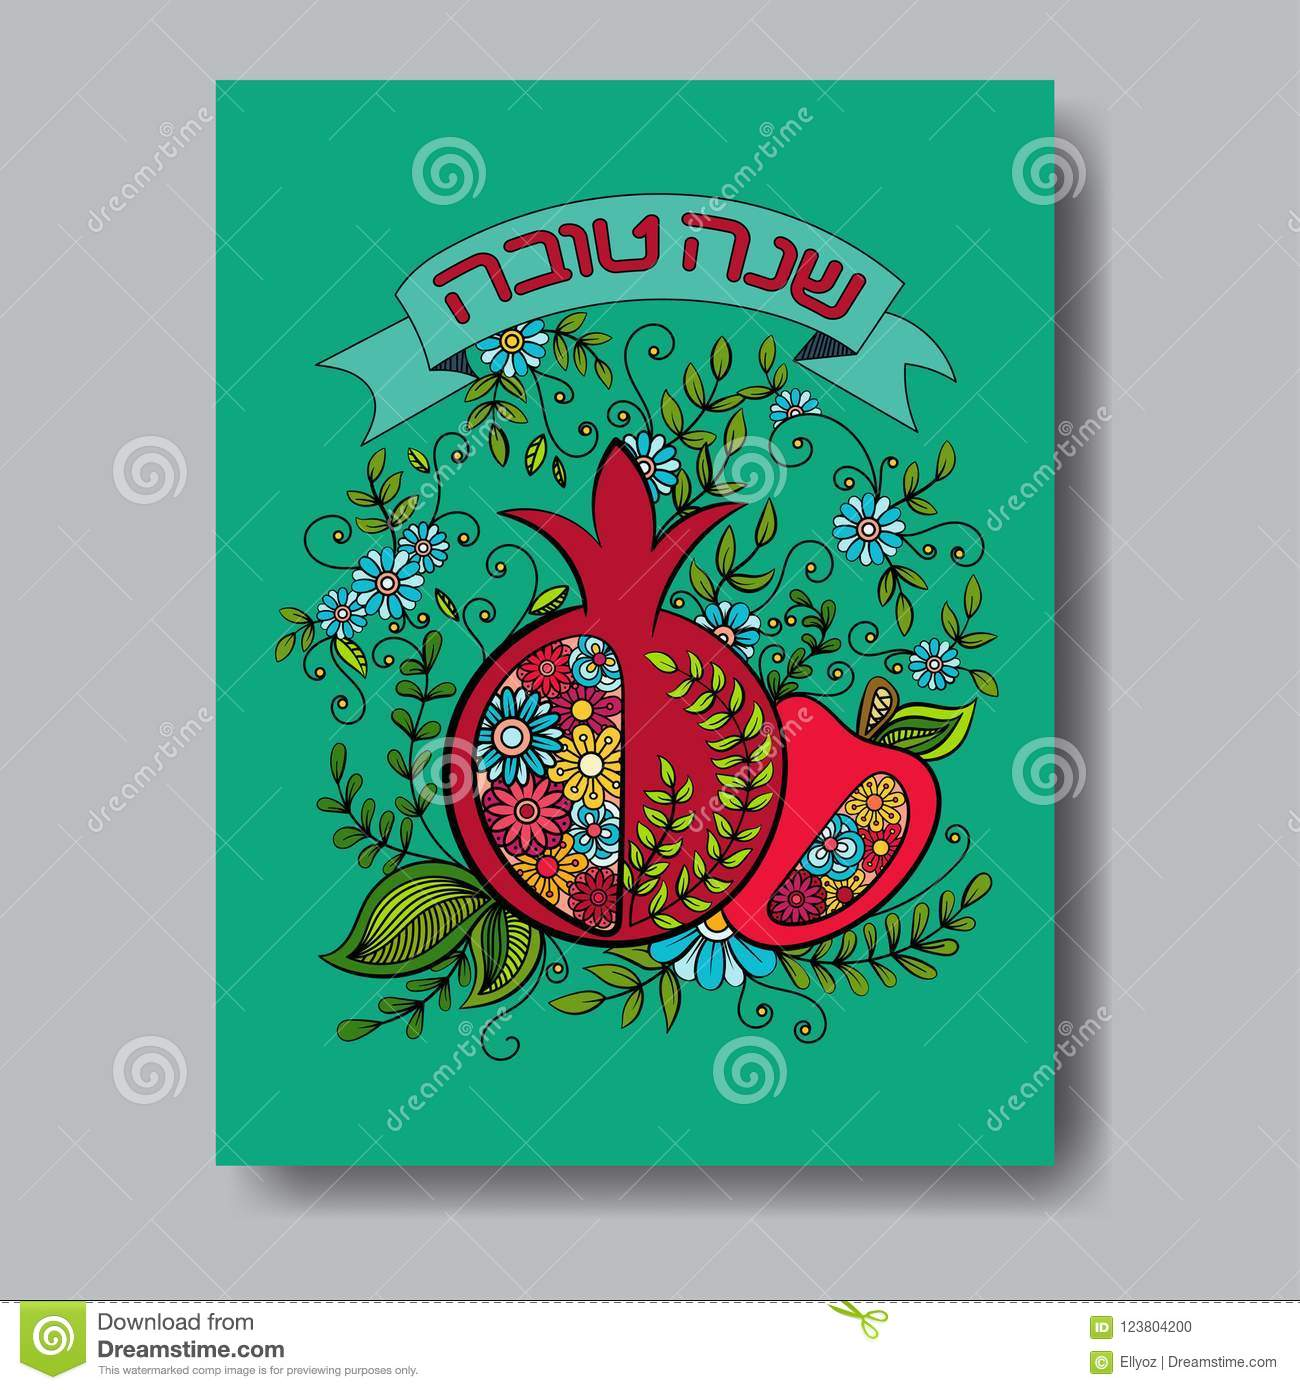 Rosh hashanah greeting card stock vector illustration of line rosh hashanah jewish new year greeting card template with apple and pomegranate hebrew text happy new year shanah tovav hand drawn vector illustration m4hsunfo